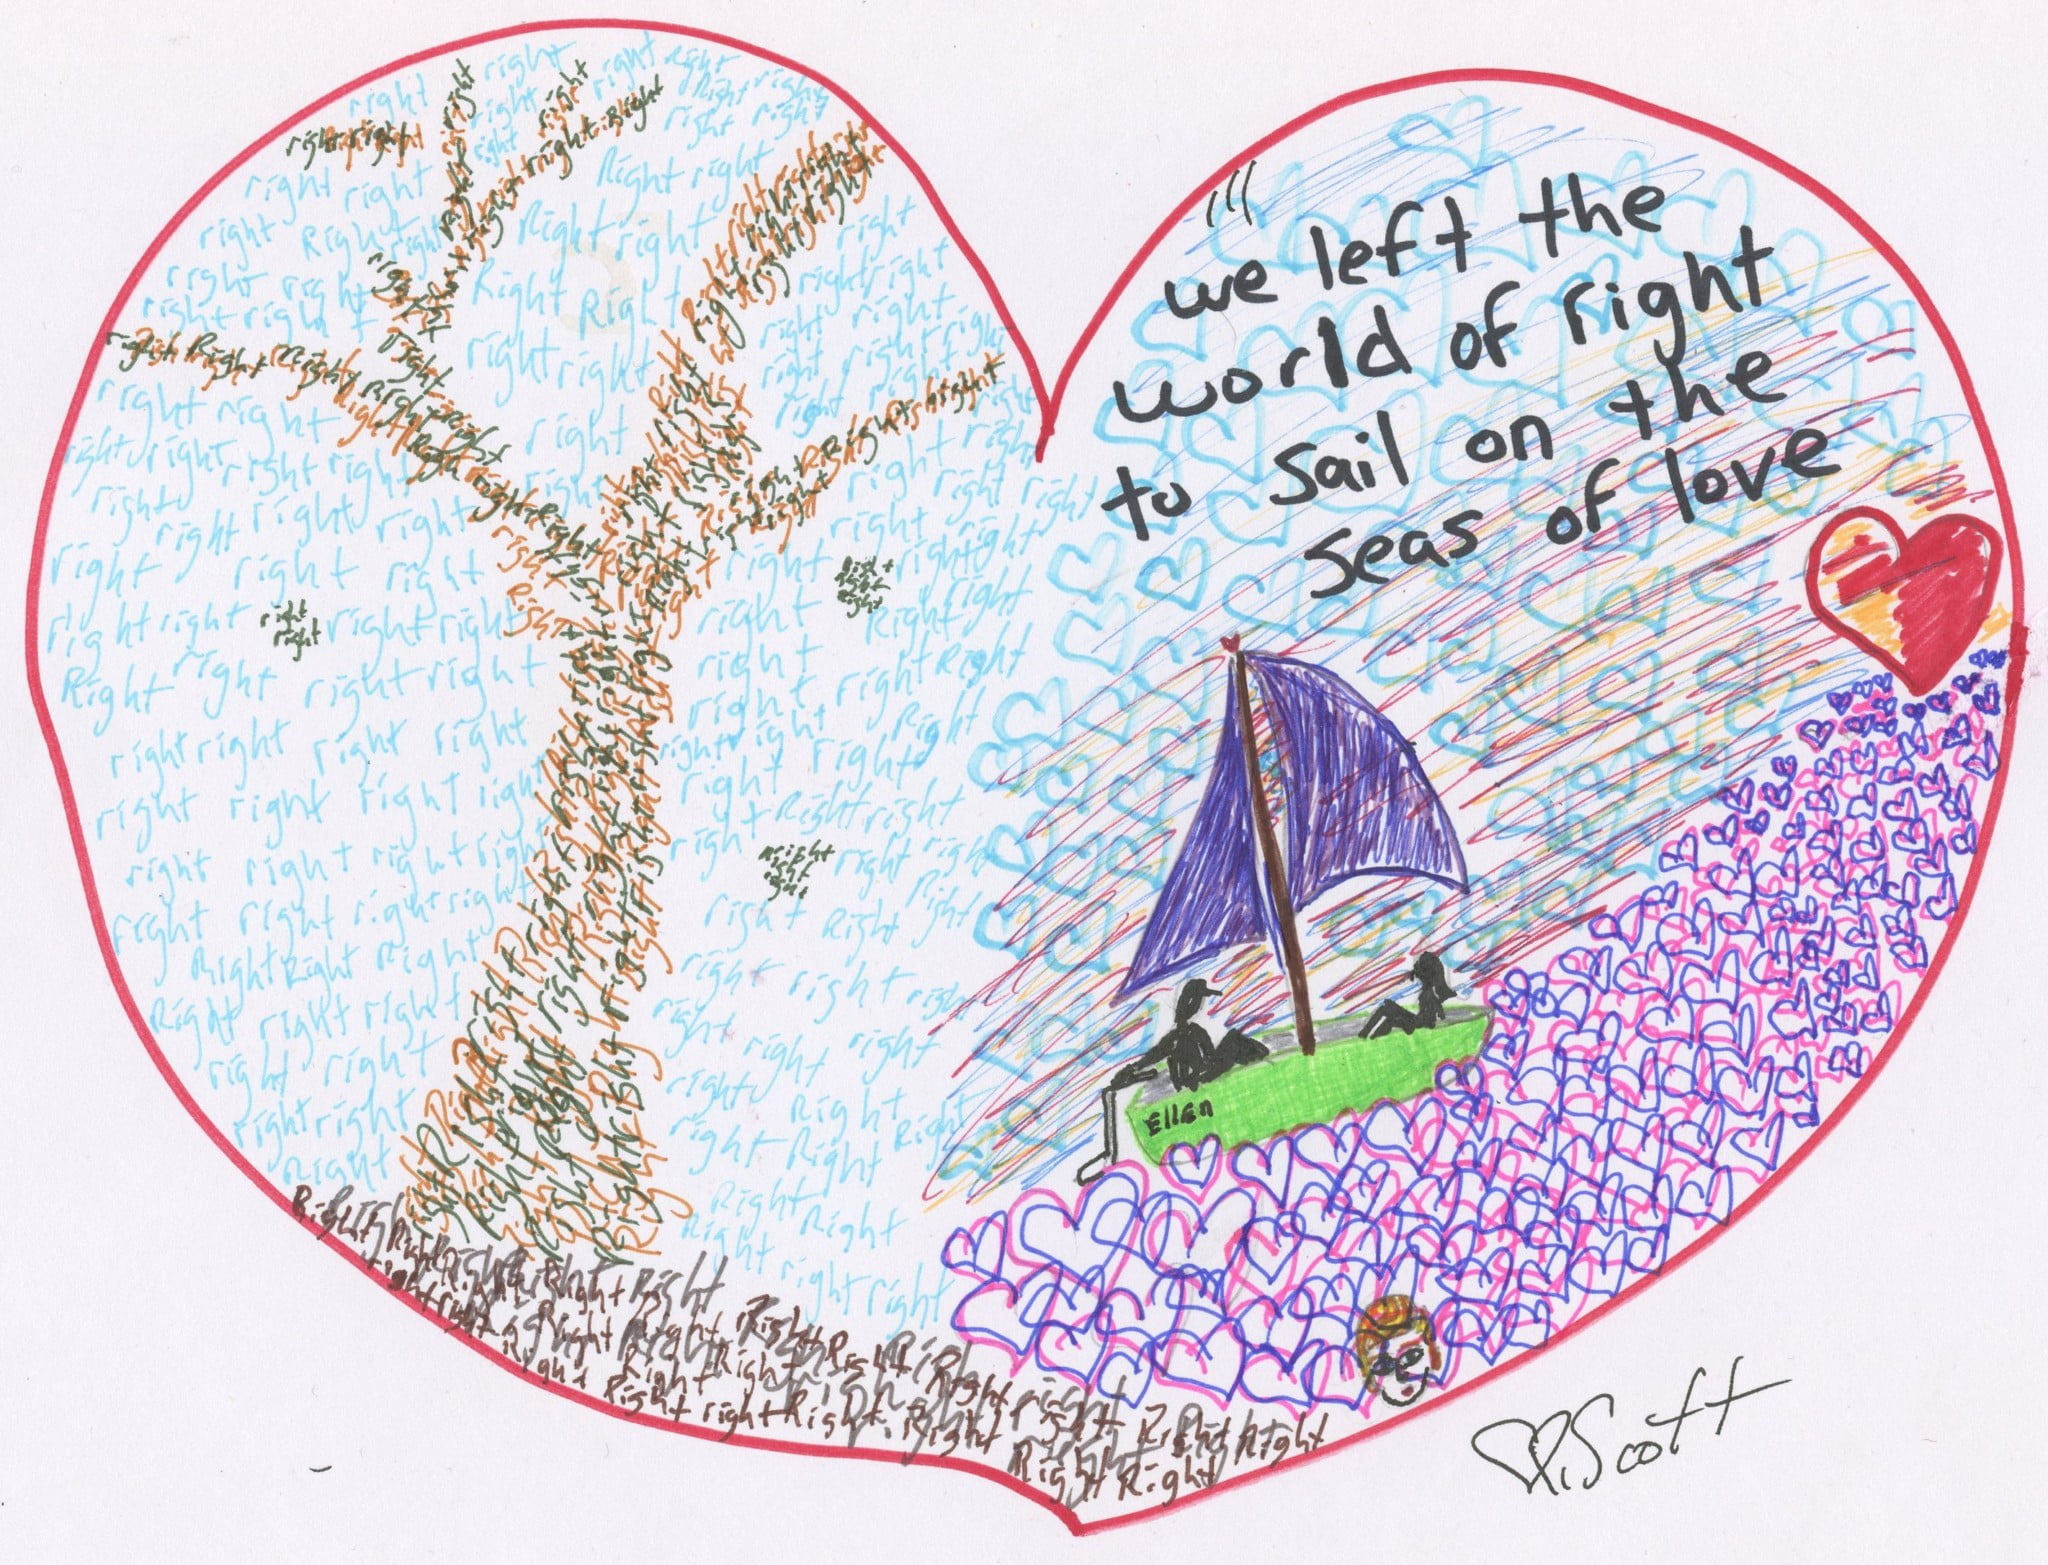 sail, love, right, left, christian